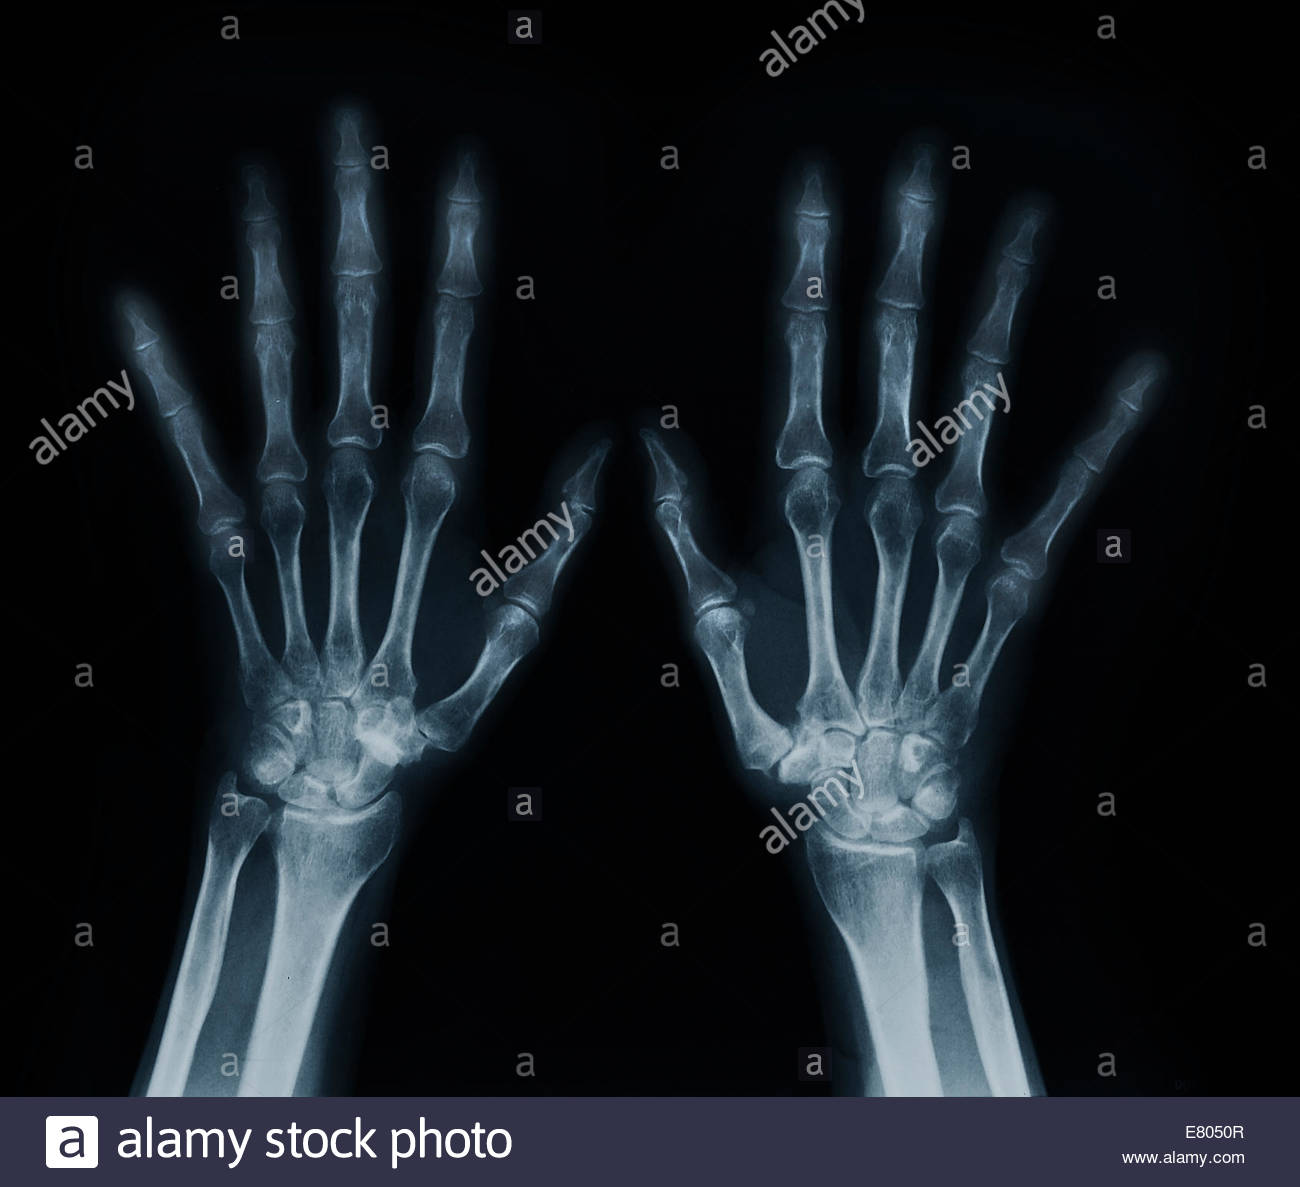 Human Fingers Anatomy Stock Photos & Human Fingers Anatomy Stock ...